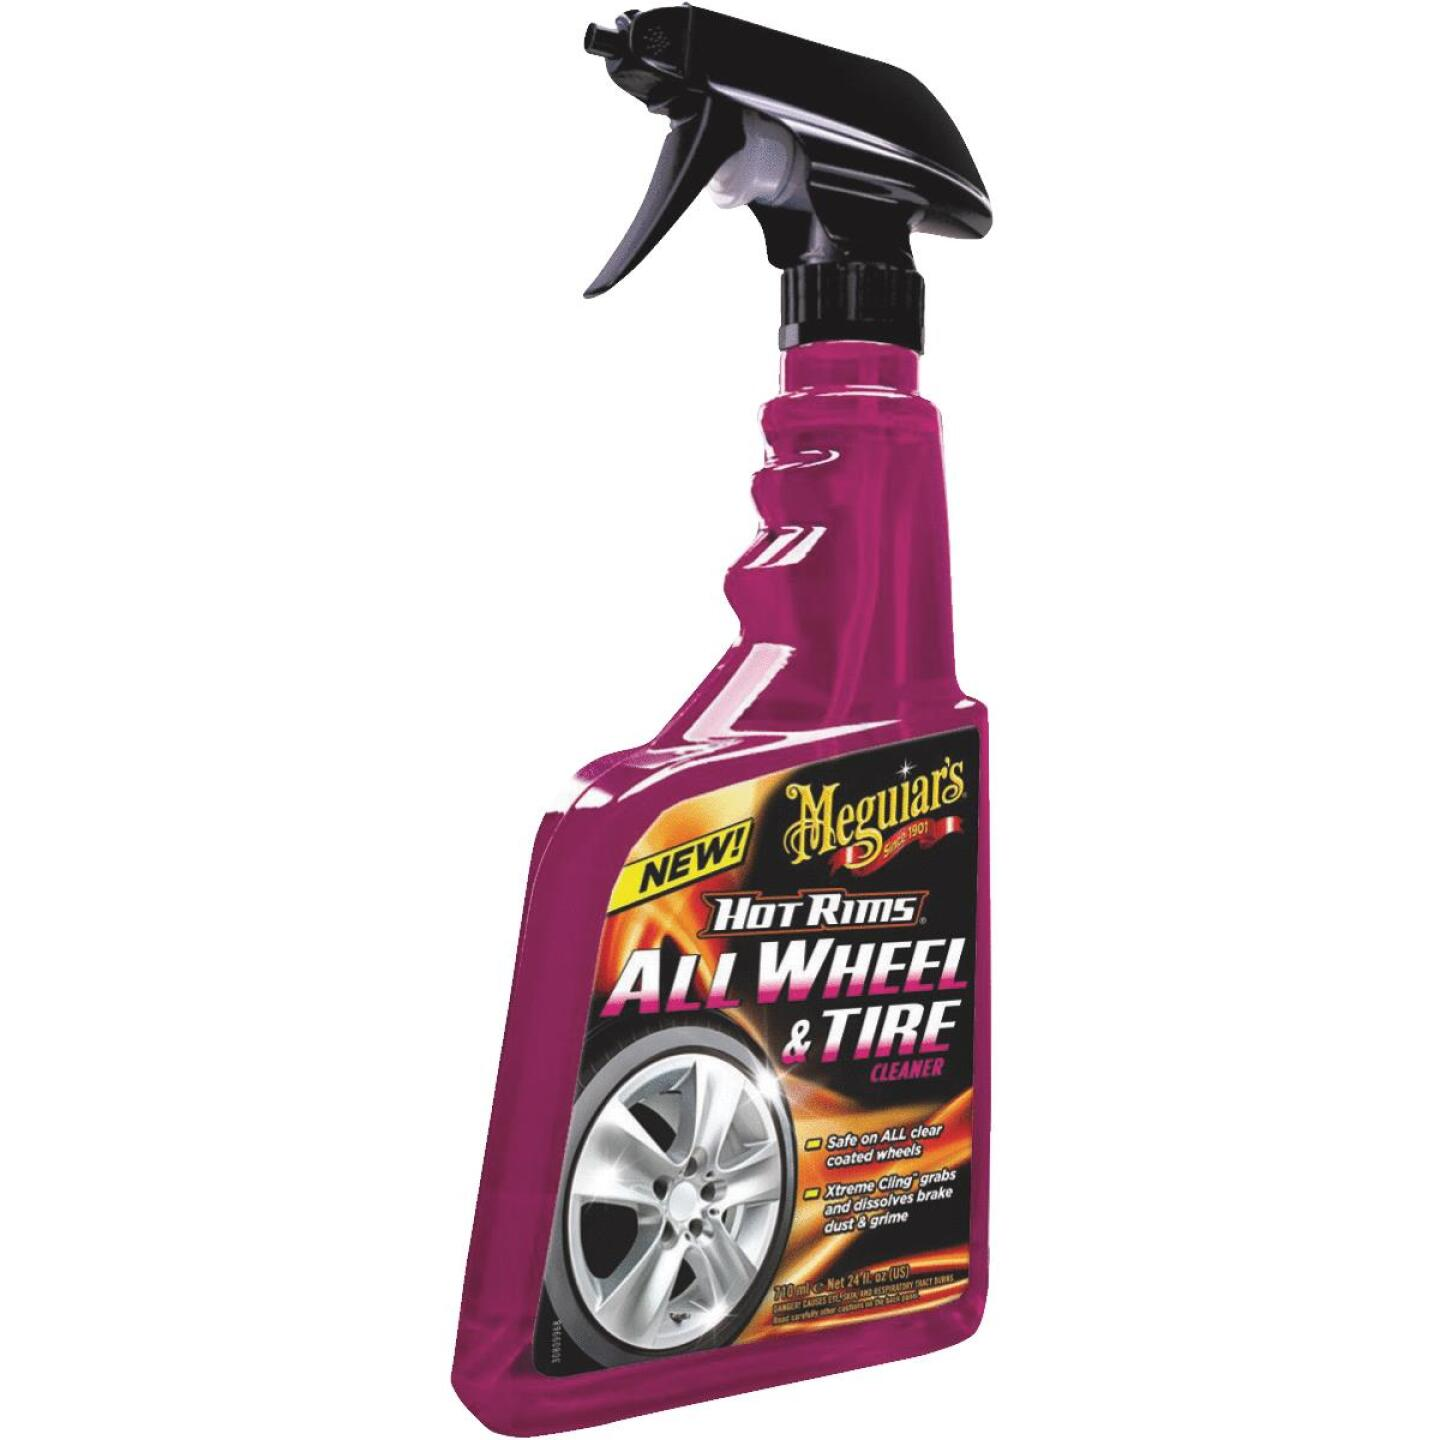 Meguiars Hot Rims 24 oz Trigger Spray Wheel Cleaner Image 1